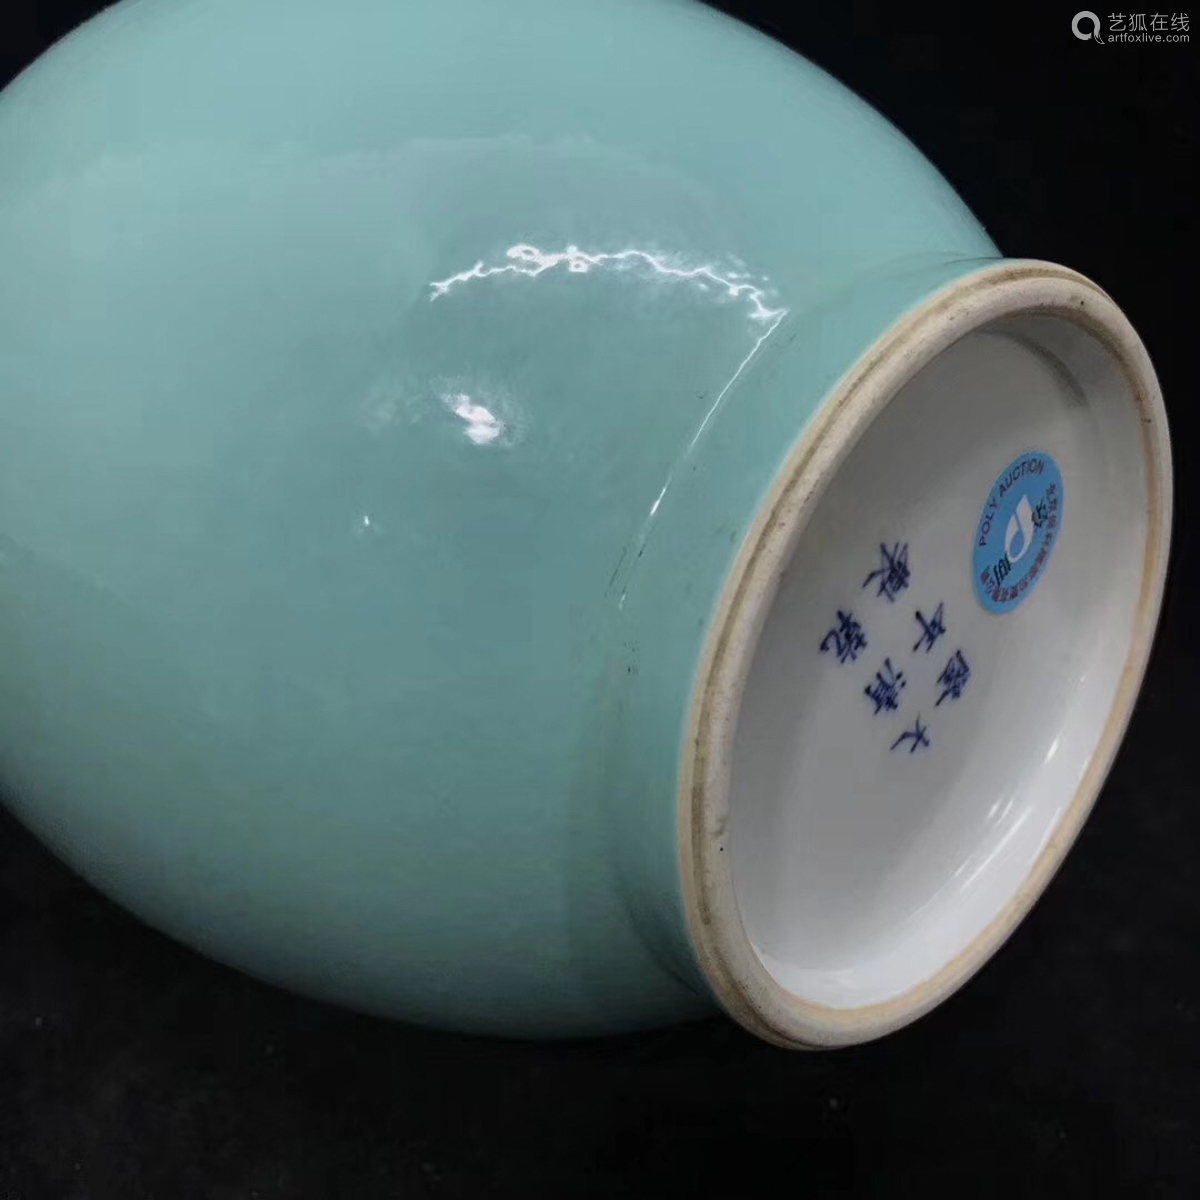 17-19 CENTURY, A PAIR OF GREENISH-BLUE COLOUR VASE, QING DYNASTY